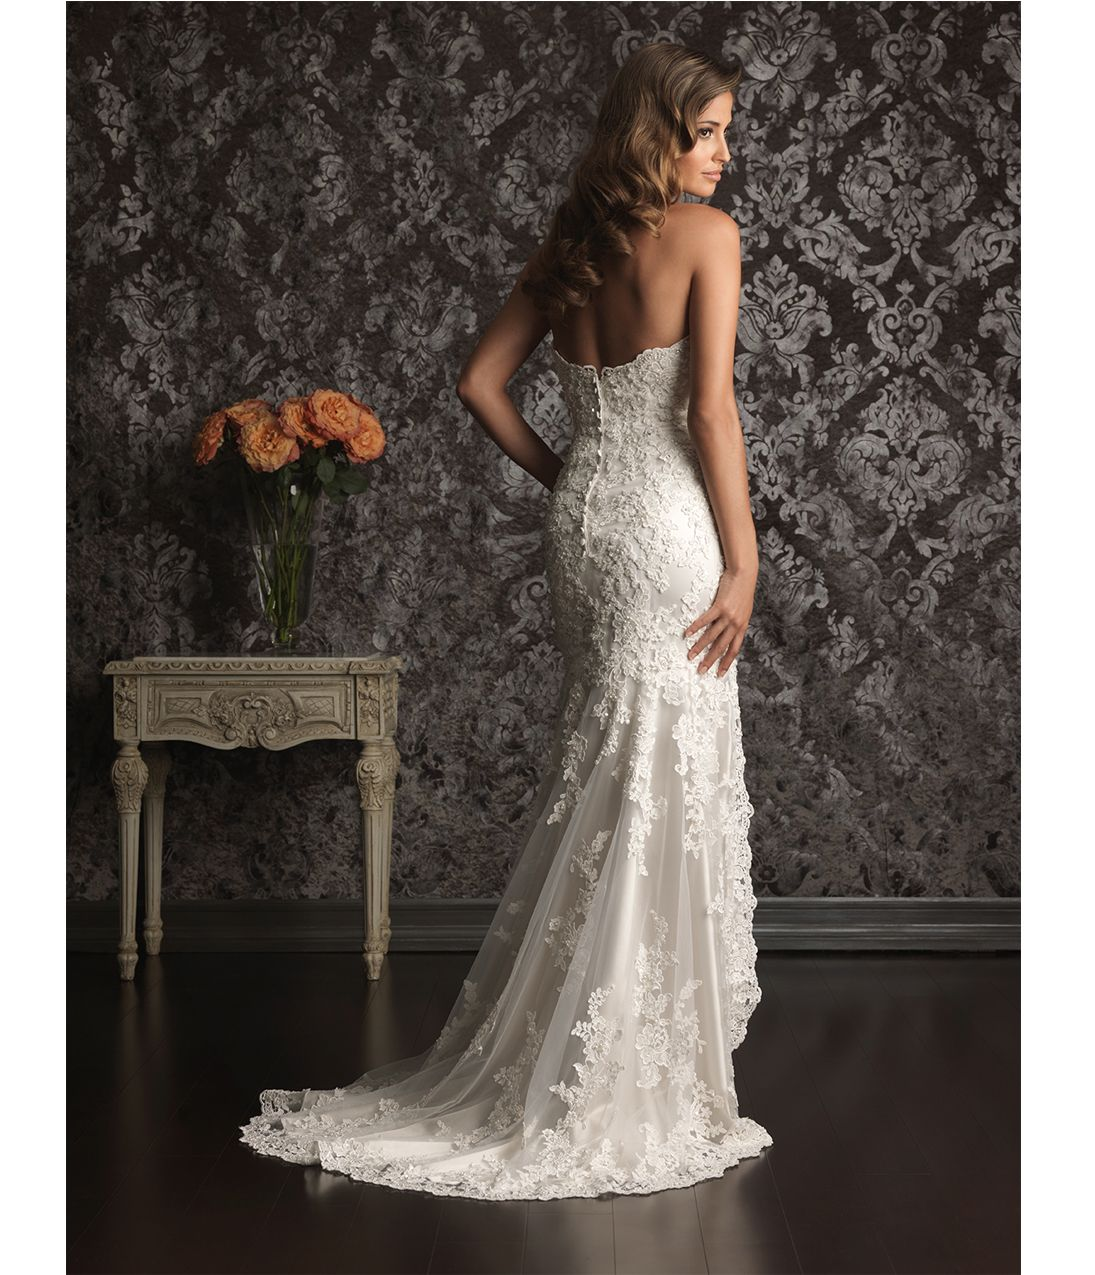 cf0ce5db0a1 2013 Allure Bridal (back)- White Lace Applique   Charmeuse Satin High Low  Wedding